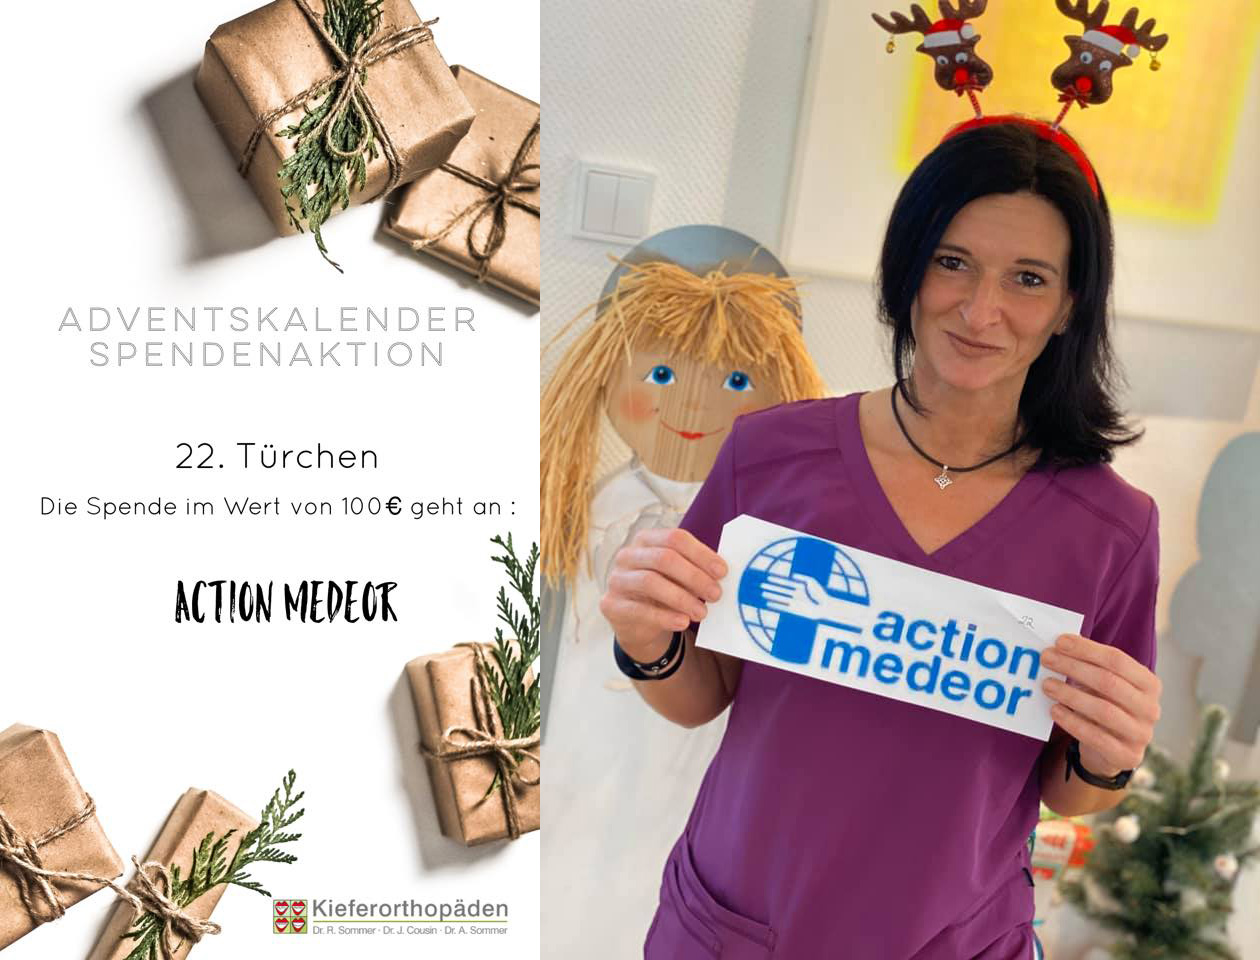 Adventskalender Spendenaktion · 22. Türchen